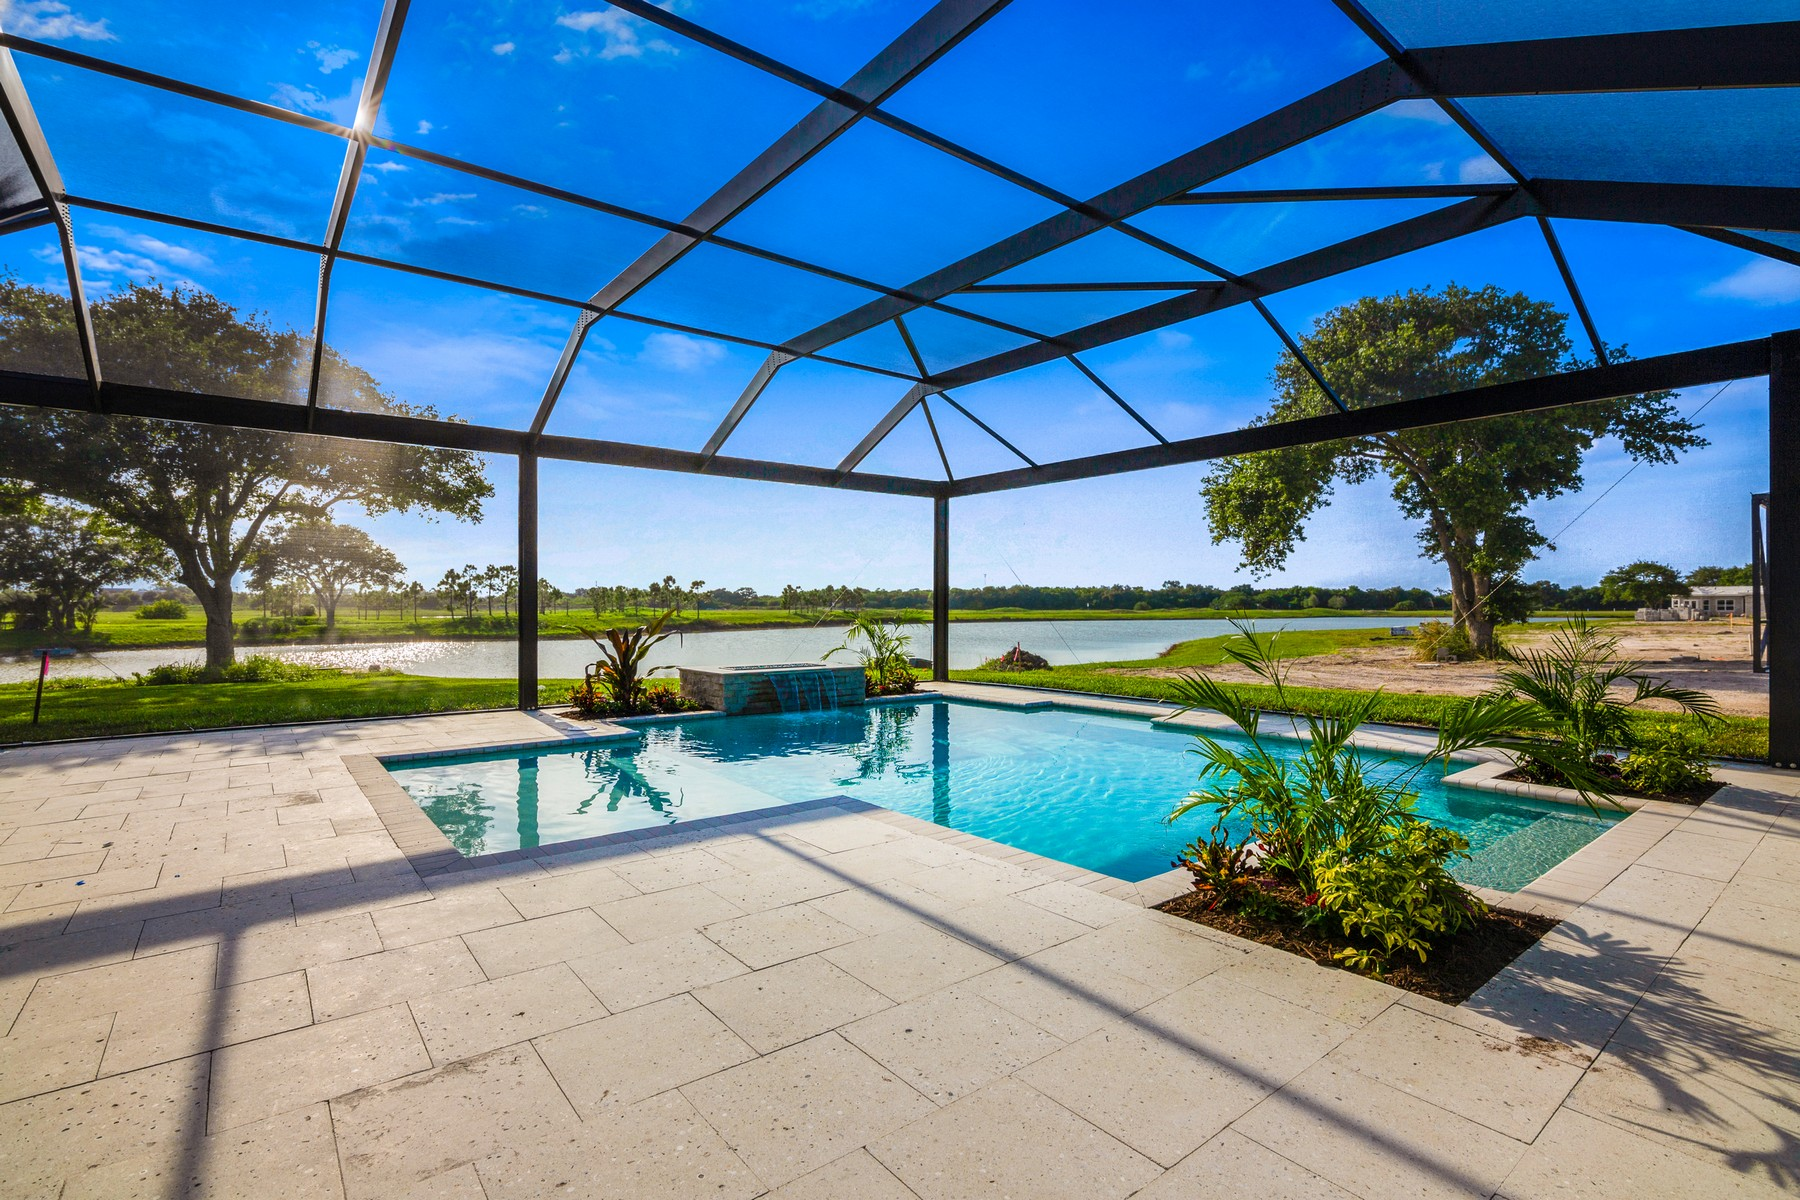 Single Family Homes for Sale at Resort Living in Grand Harbor 2349 Grand Harbor Reserve Square Vero Beach, Florida 32967 United States